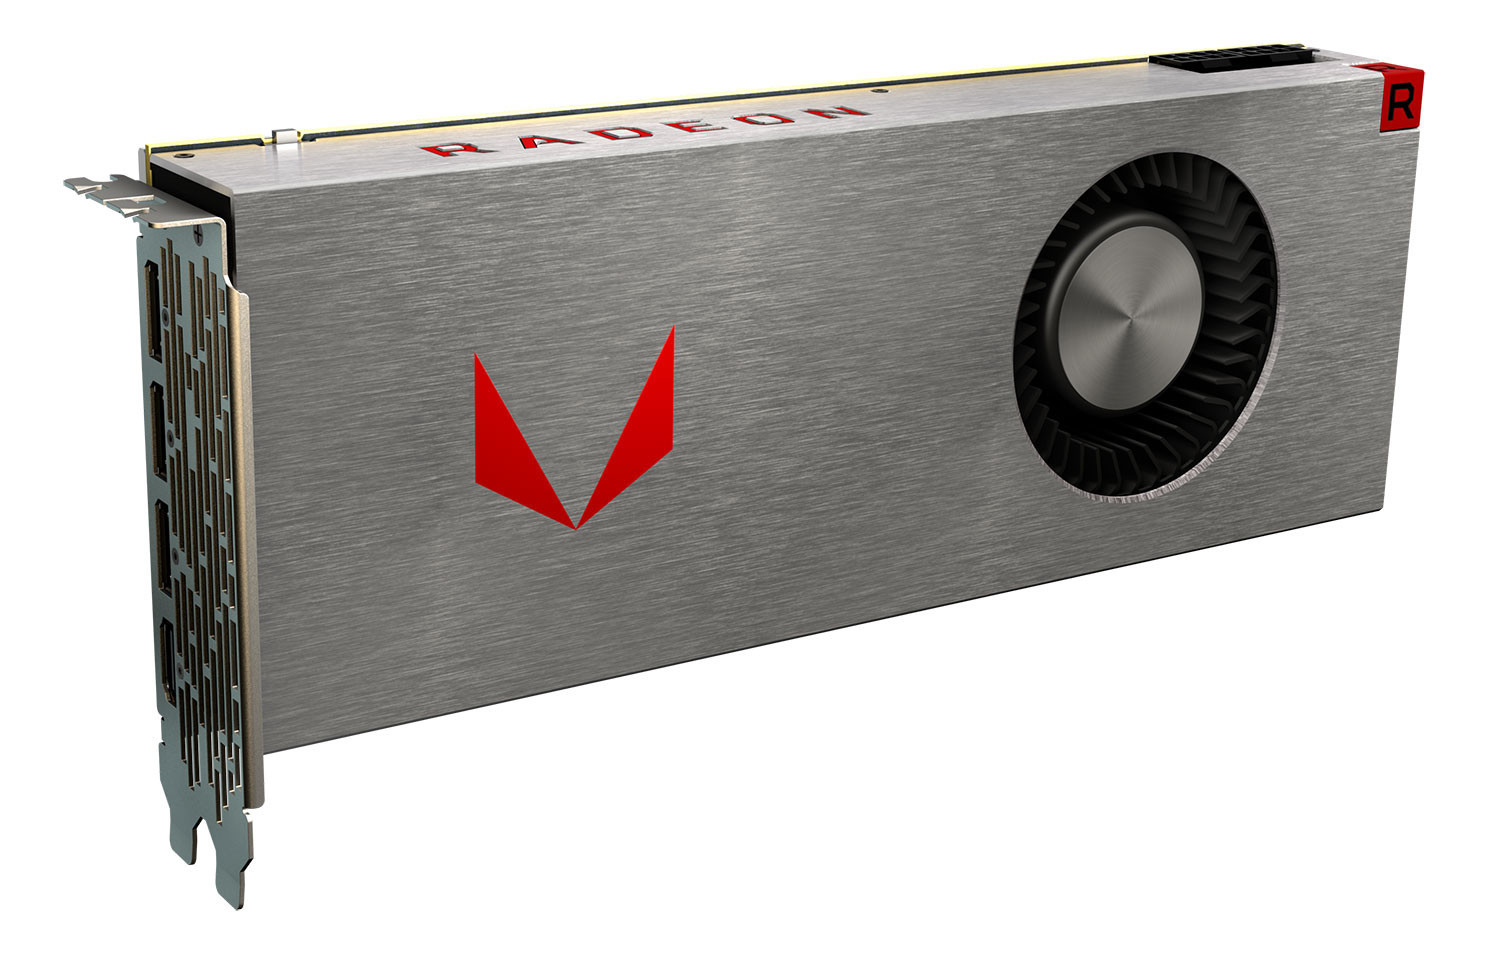 Amd Giving Up On Crossfire With Rx Vega Techpowerup Forums Vga Card Buldozer Ddr3 At Best One Can Expect Dual Gpu Cards For The Professional Or Compute Markets Such As Radeon Pro Instinct Brands